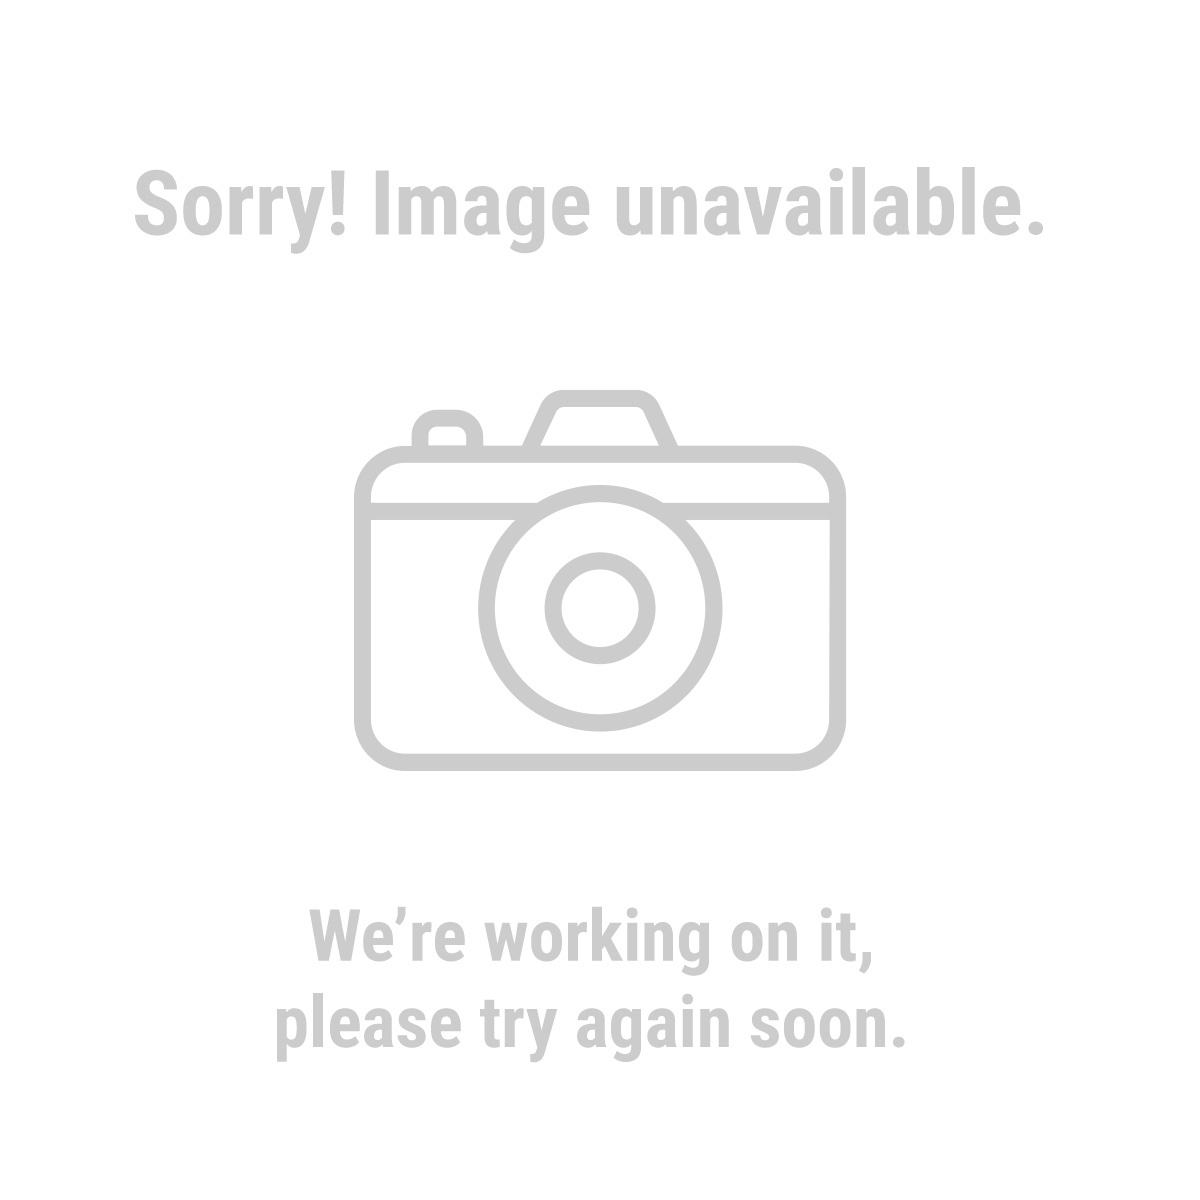 "Central Forge 34143 2 Piece 2600 lbs. 1/4"" Clevis Grab Hooks"